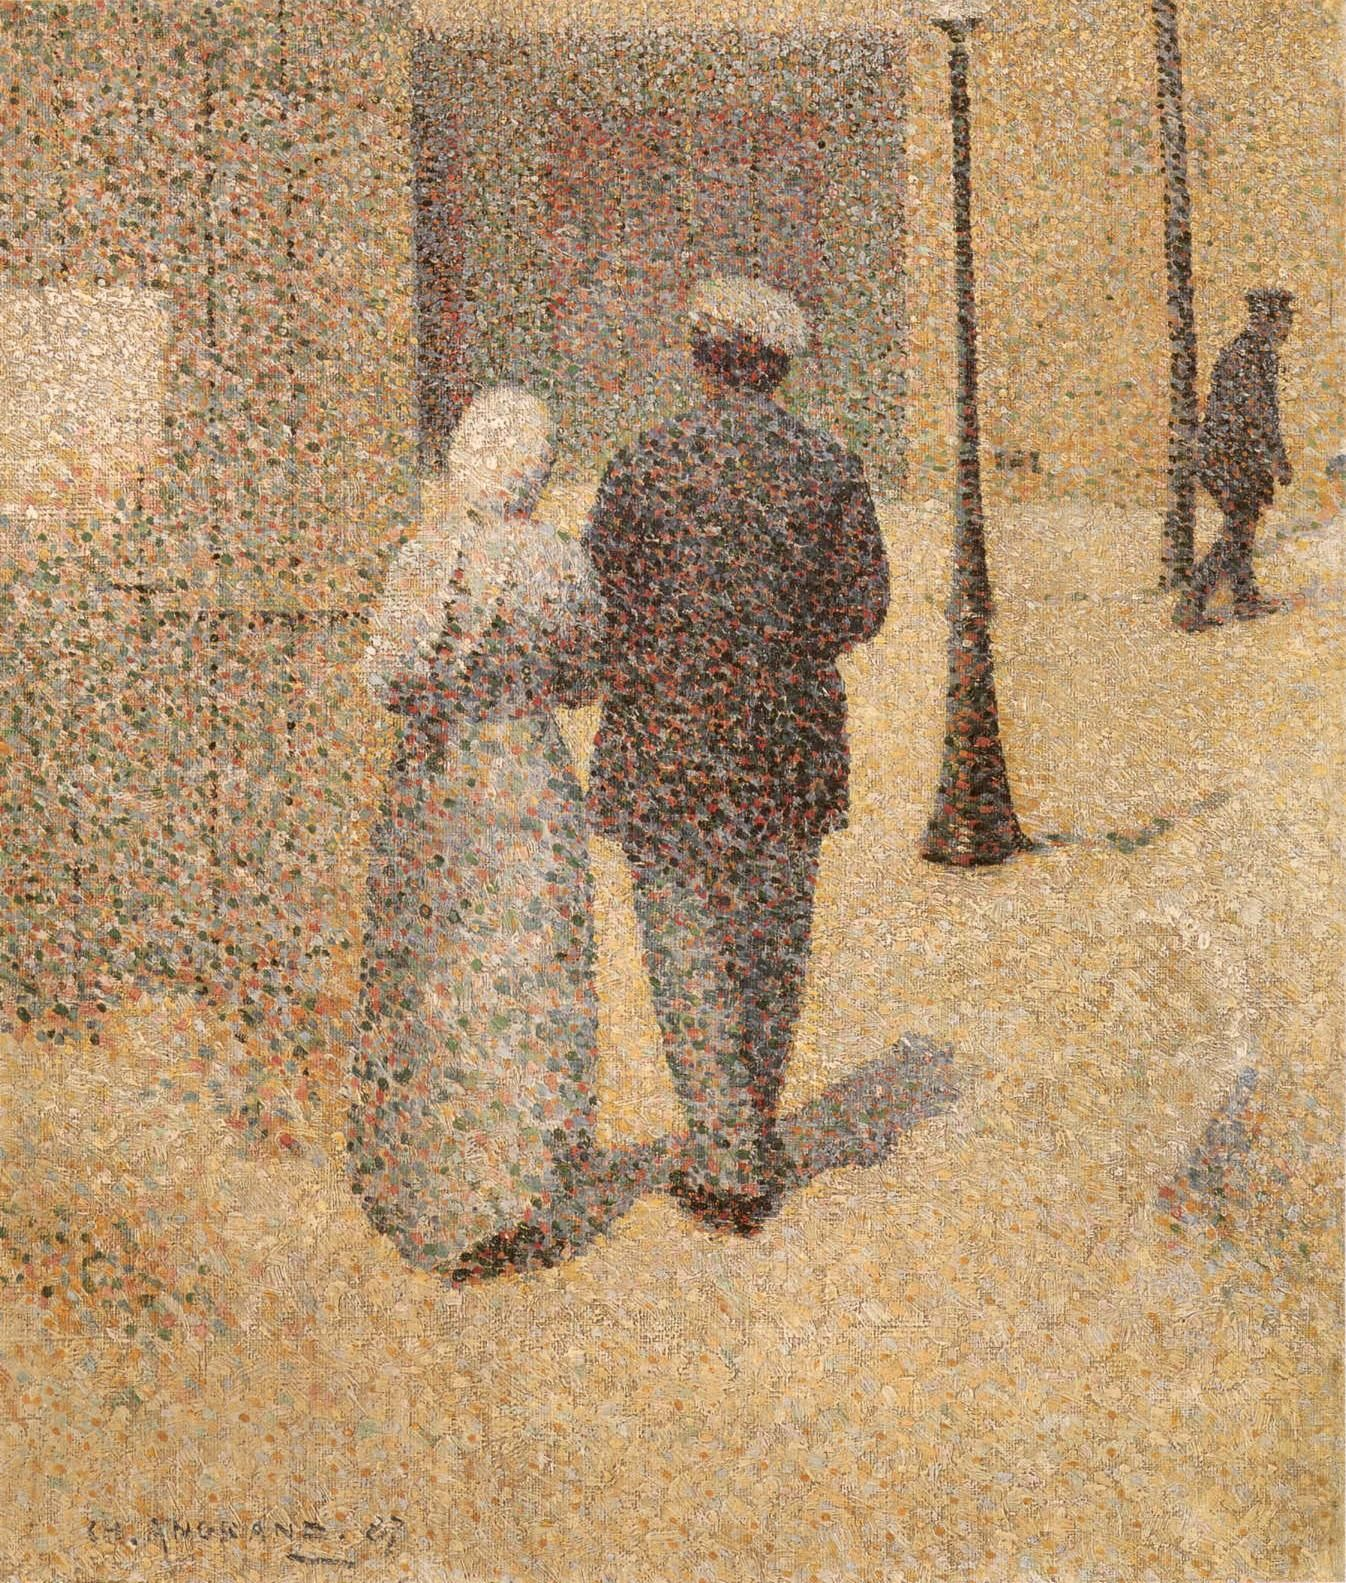 Charles Angrand – Couple in a Street (1887) oil on canvas   Paris, Musée d'Orsay   Gallup, Gruitrooy and Weisberg, Great Paintings of the Western World, p. 504